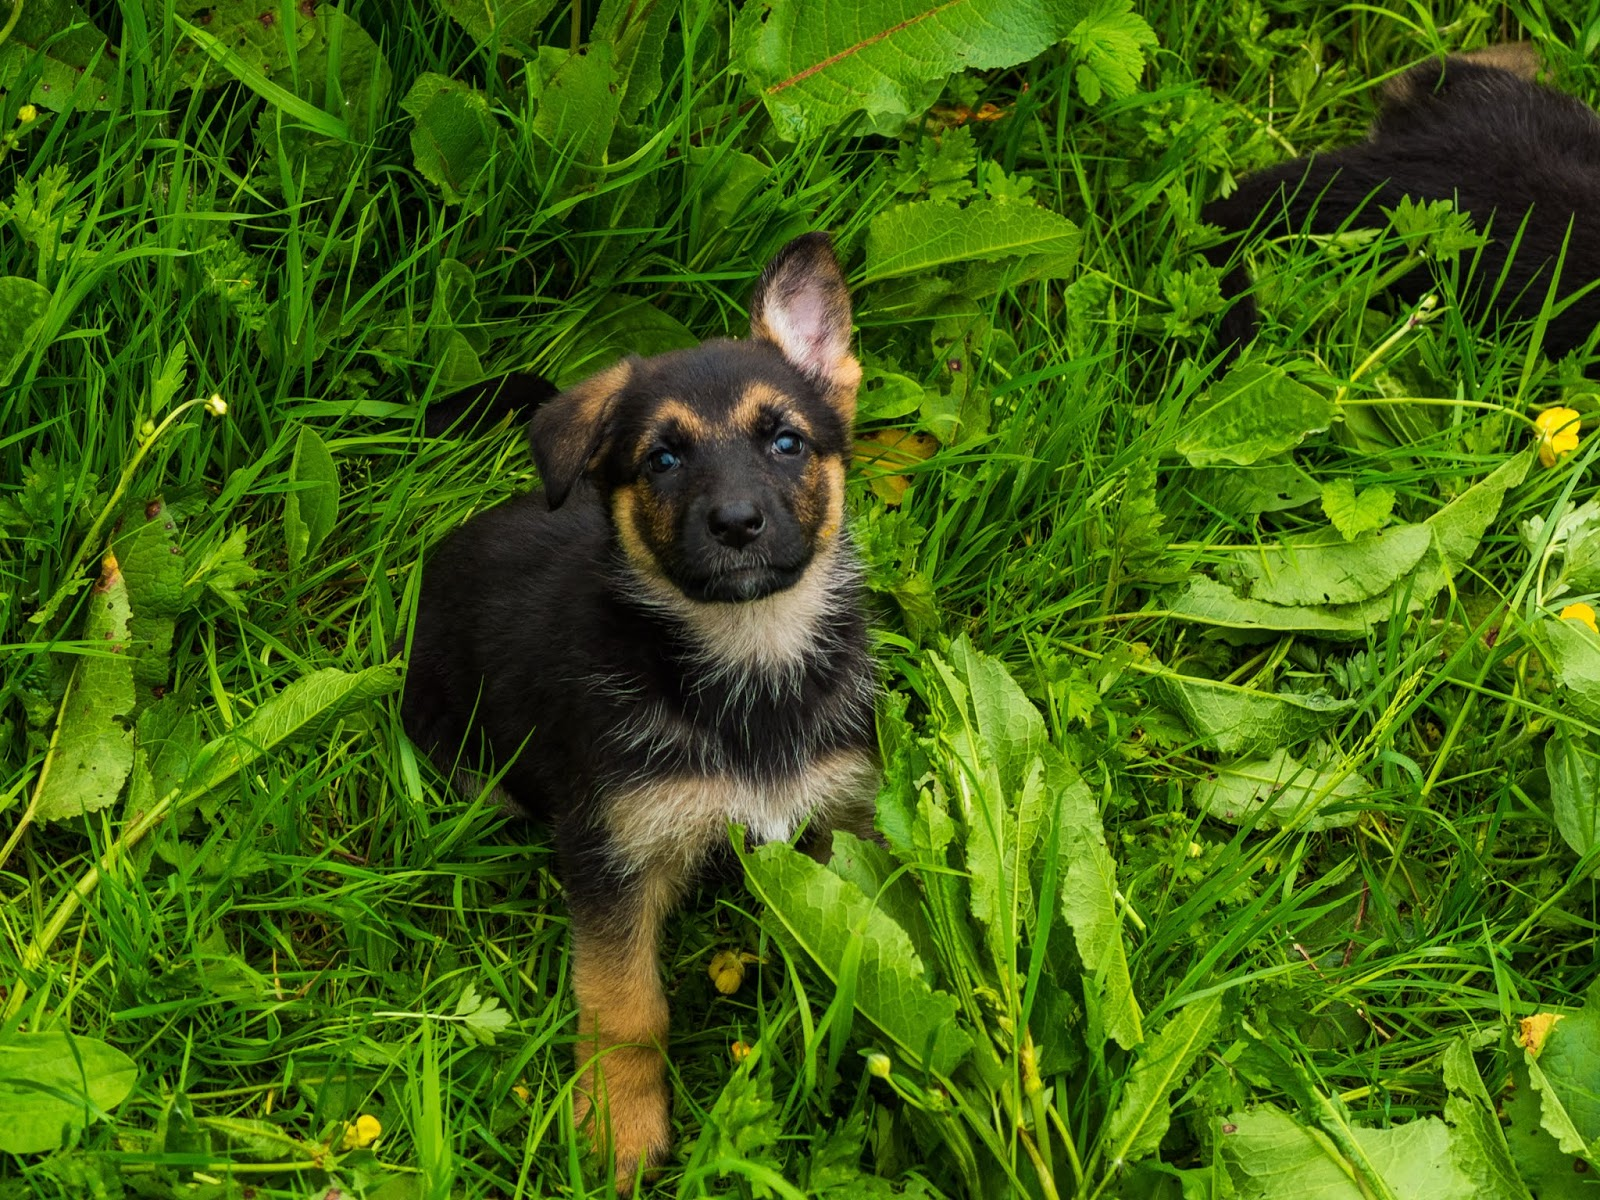 A German Shepherd puppy looking up at the camera with one ear up.